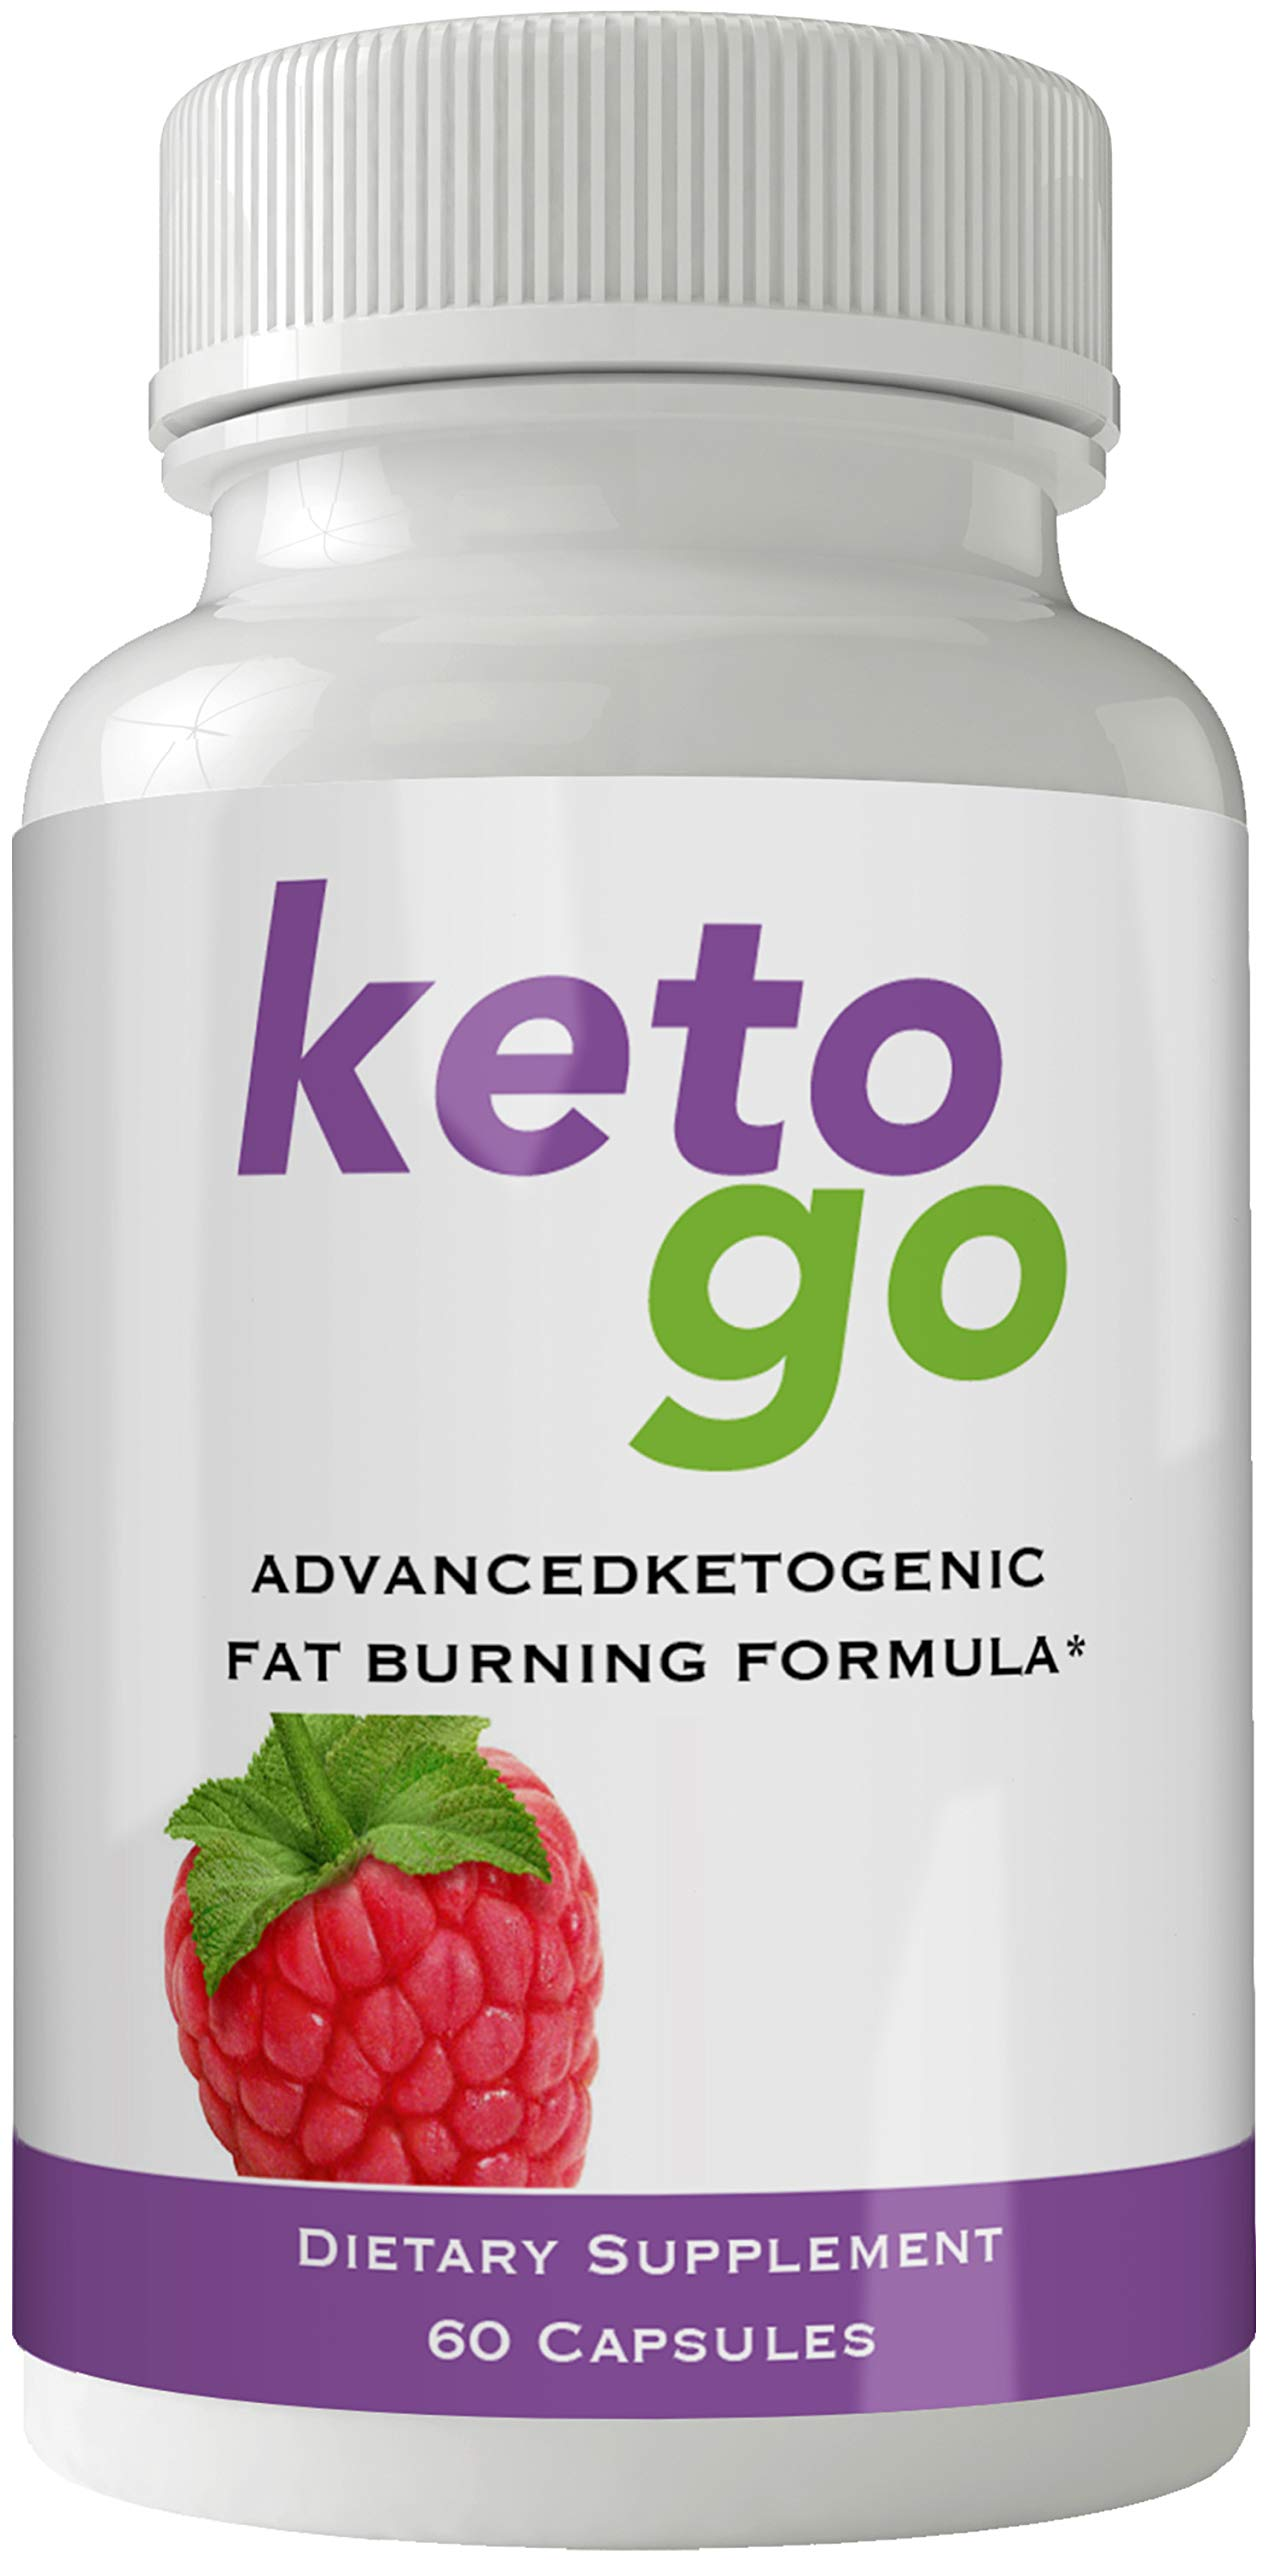 Keto Go Pills | Keto Go Weight Loss Pills | Keto Go It Works Supplements - Weightloss Lean Fat Burner | Advanced Thermogenic Rapid Fat Loss Supplement for Women and Men by nutra4health LLC (Image #1)